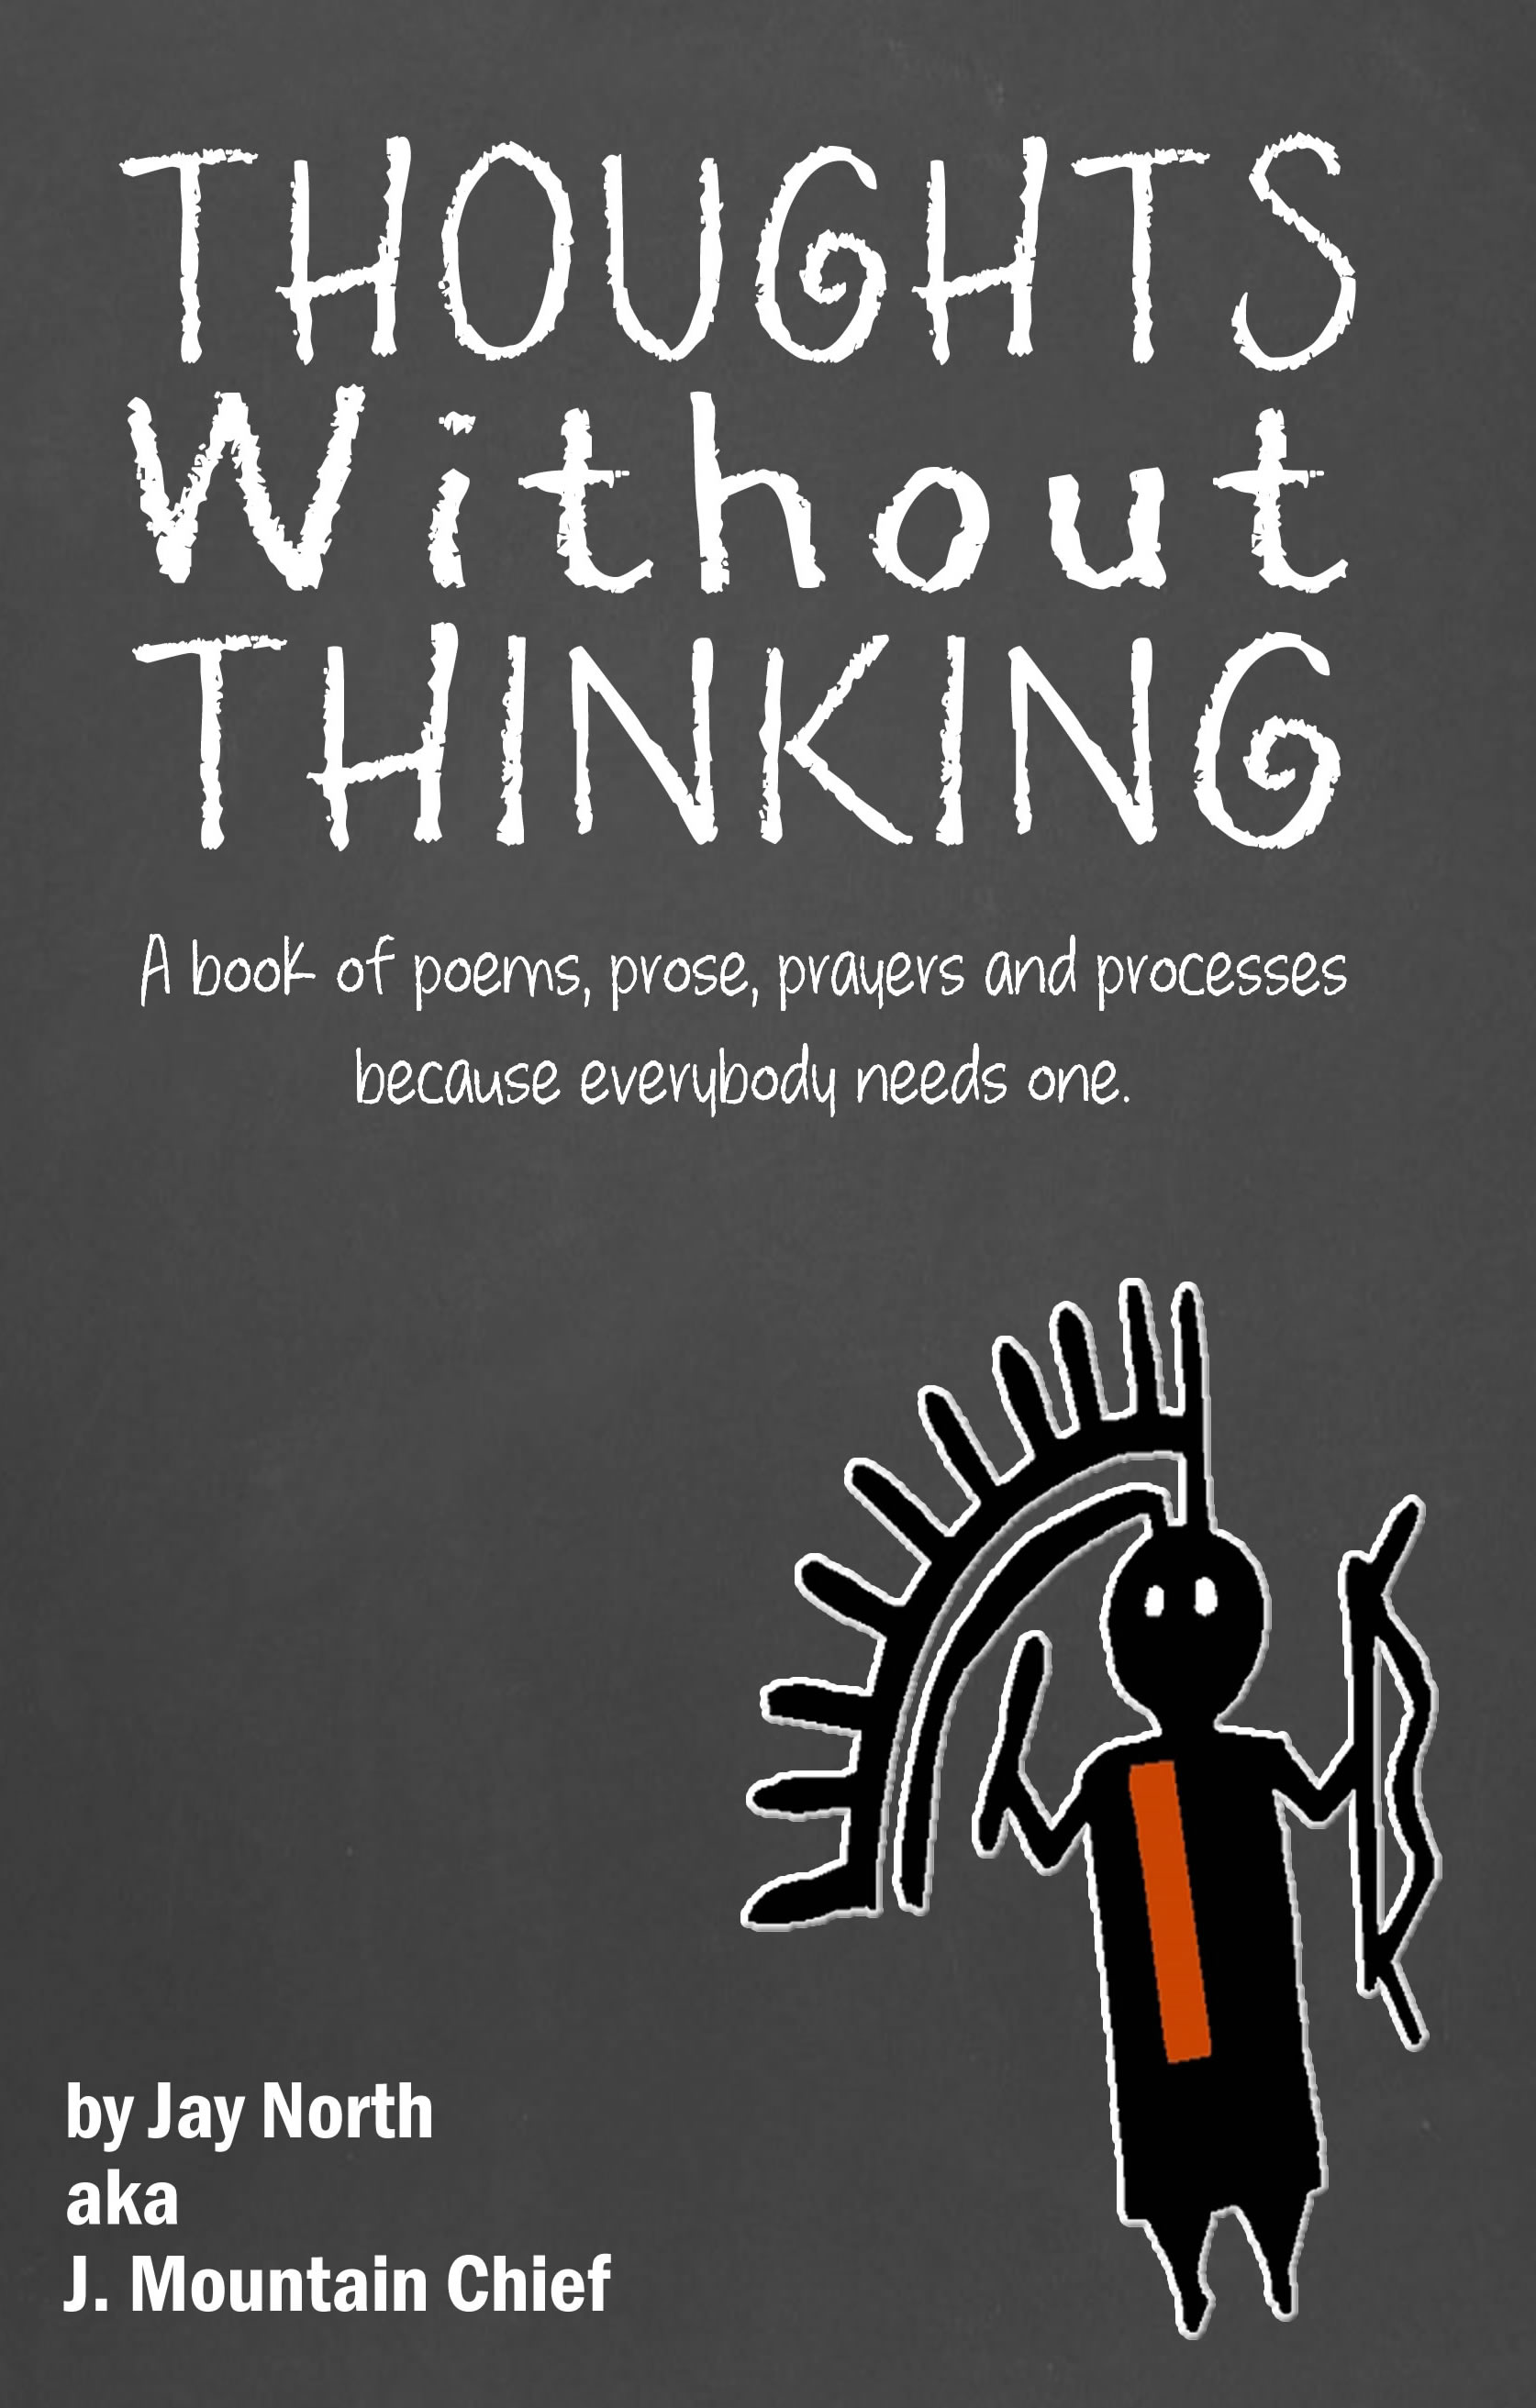 Thoughts Without Thinking: A book of poems, prose, prayers and processes because everybody needs one.